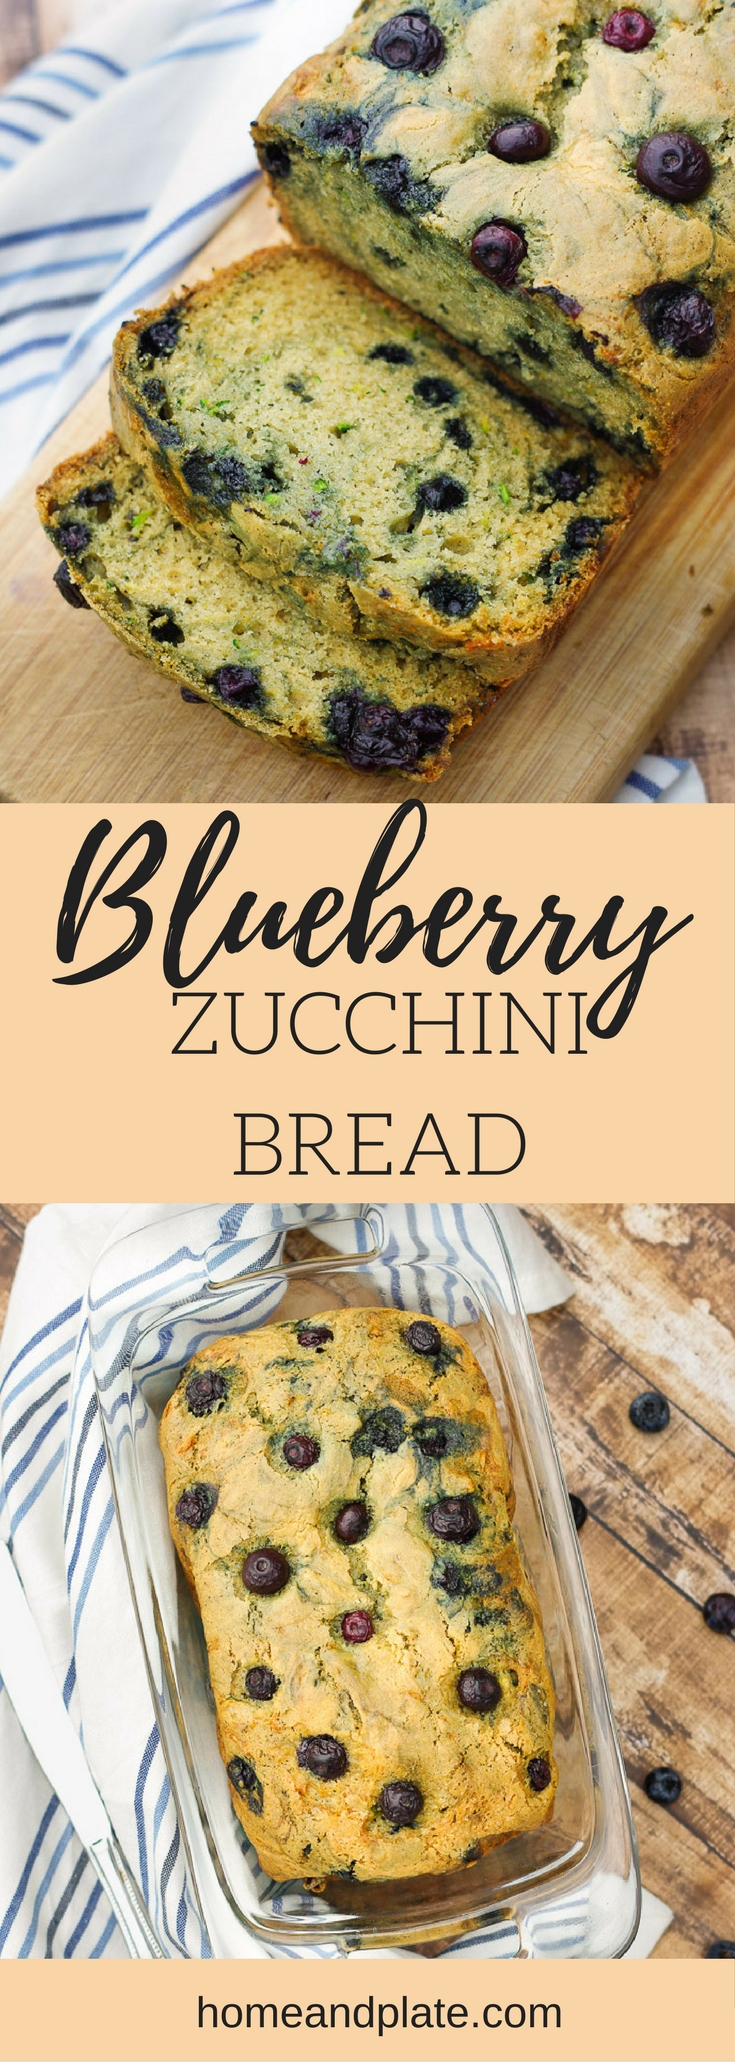 Easy Blueberry Zucchini Bread| It's a classic zucchini quick bread with a twist. This loaf is bursting with the sweet taste of blueberries. Enjoy it for breakfast or an after school snack.  | www.homeandplate.com